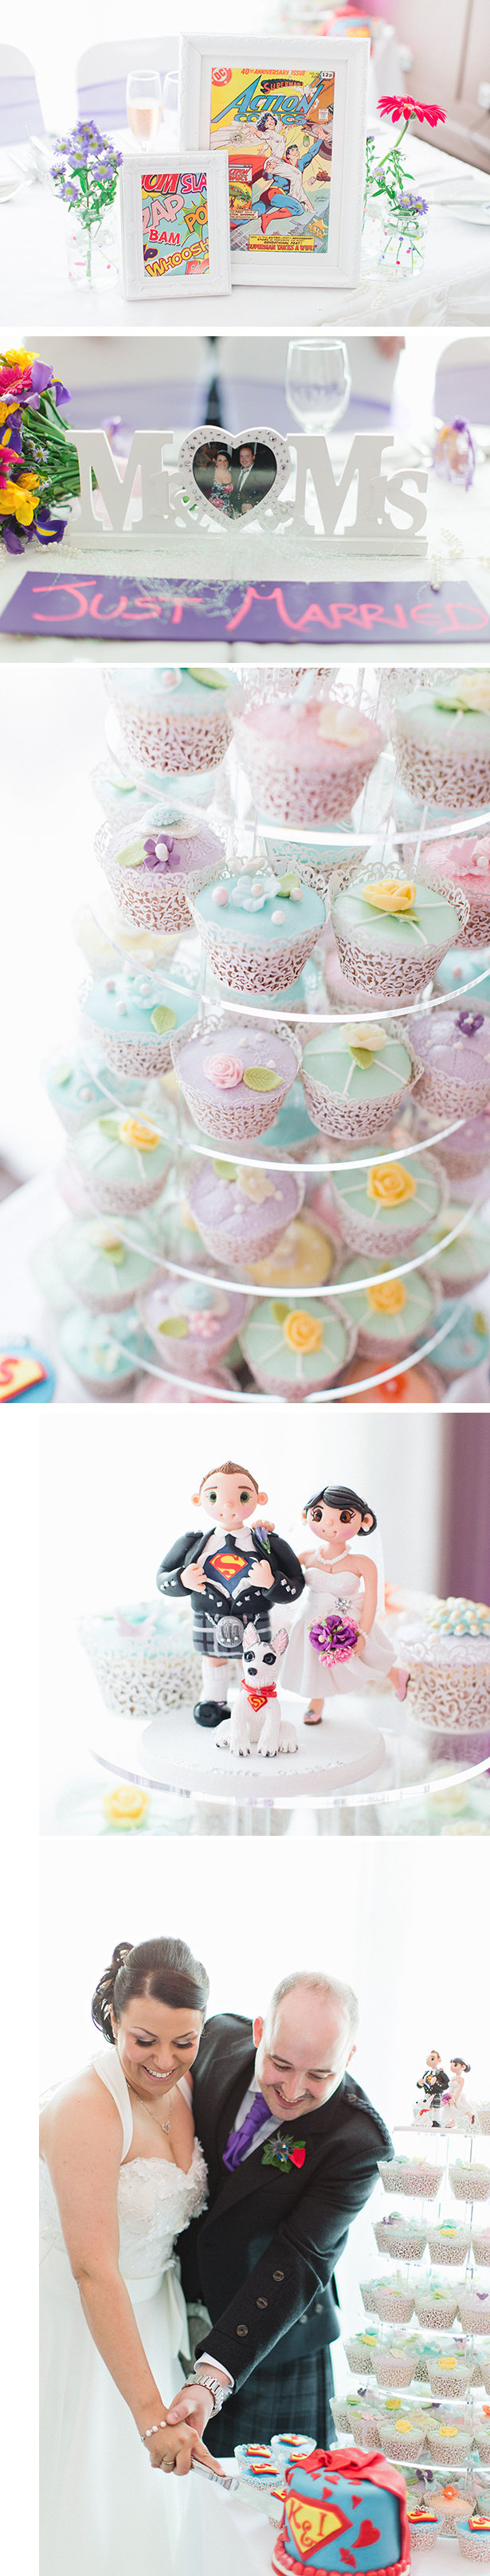 Superhero themed wedding decor | Superhero themed cake toppers and pastel coloured cupcakes | Katie and Ian's real wedding | Confetti.co.uk